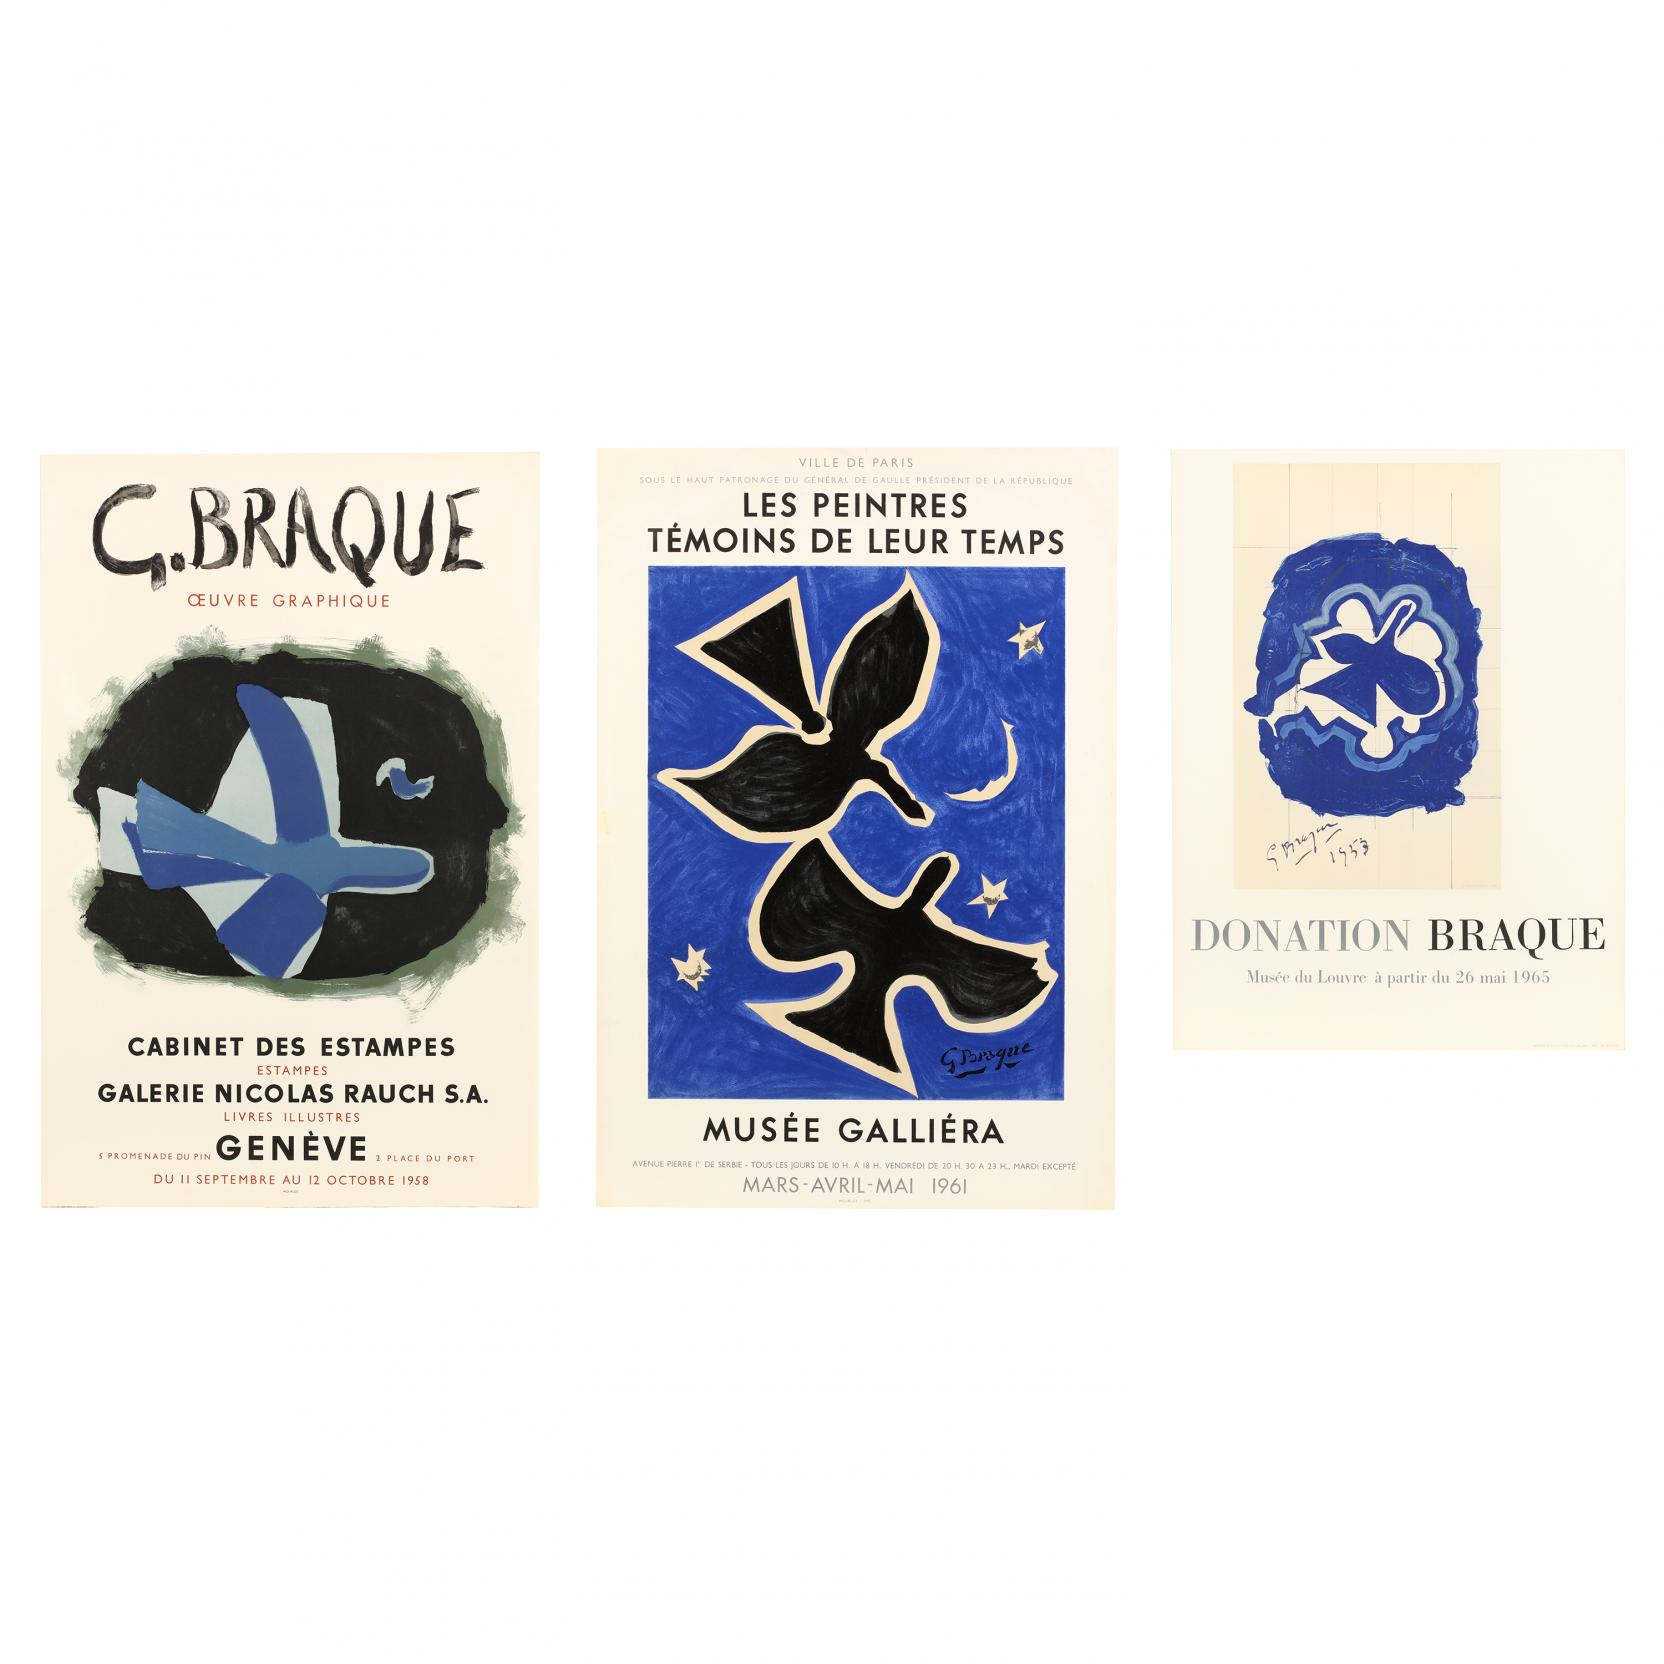 three-lithographic-georges-braque-posters-featuring-birds-mourlot